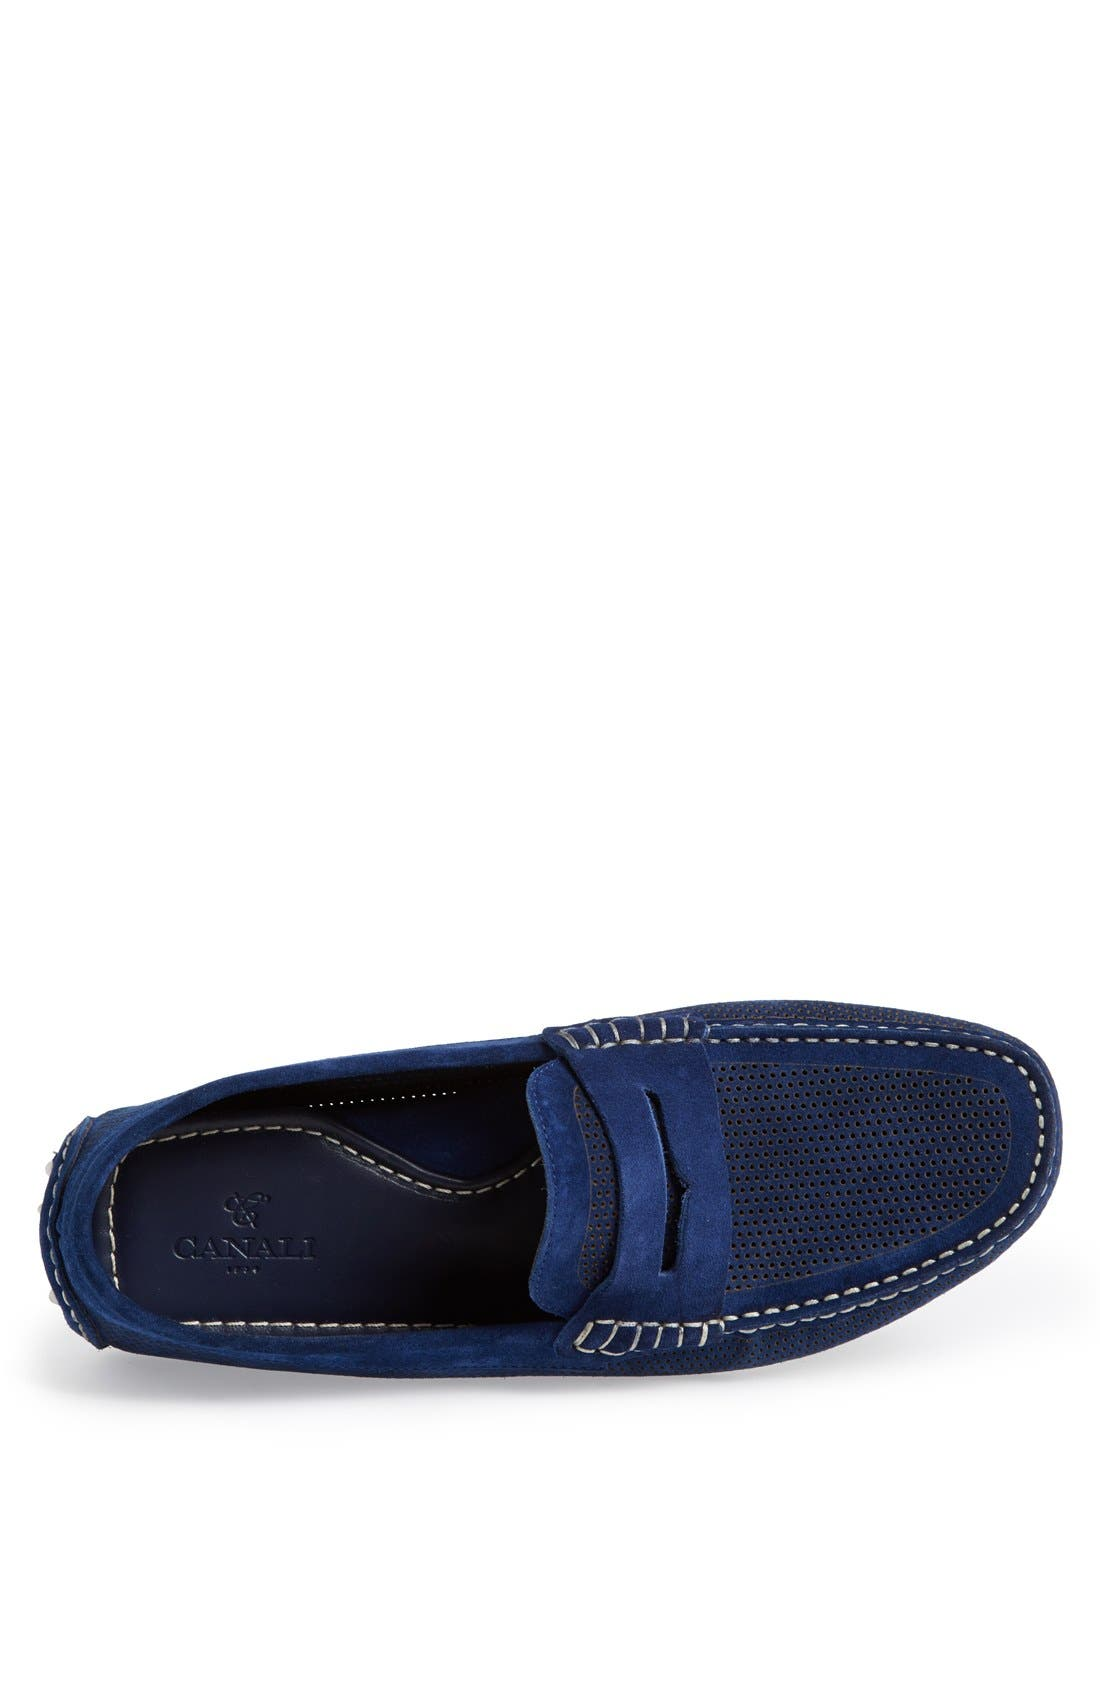 Alternate Image 3  - Canali Perforated Suede Driving Shoe (Men)